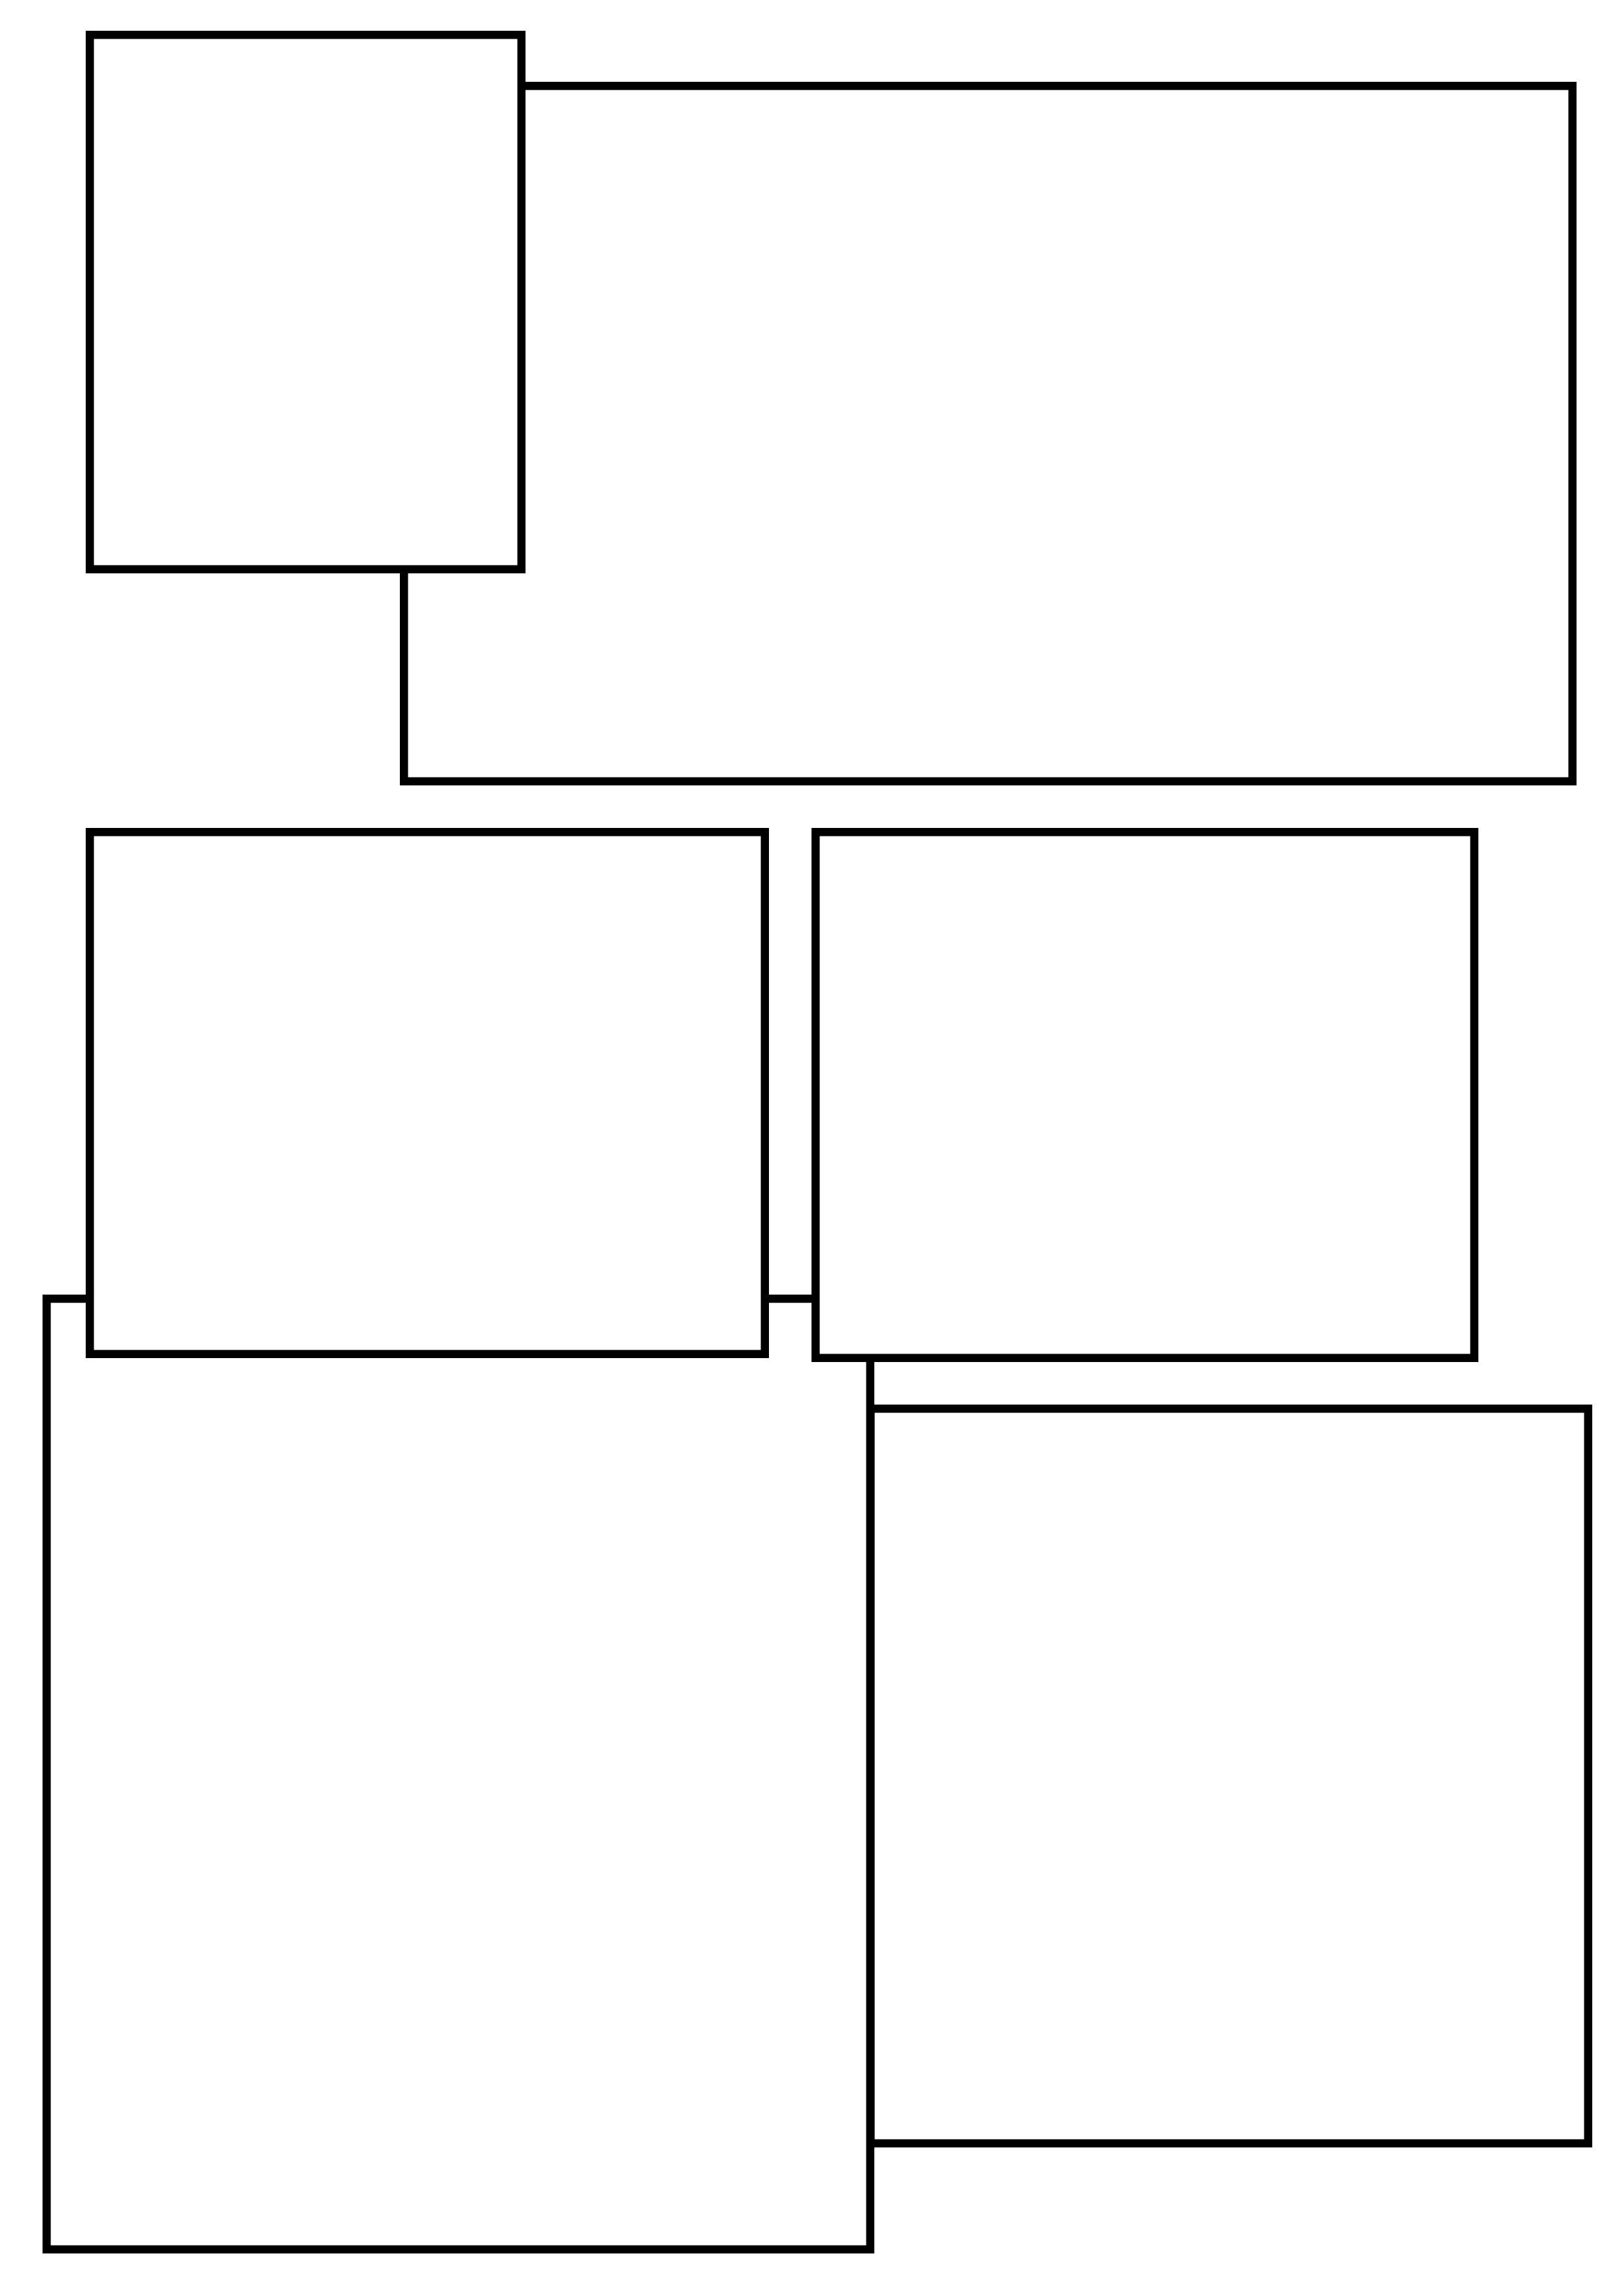 Comic Book Panel Template Setting Out Layouts for the Ic Strip